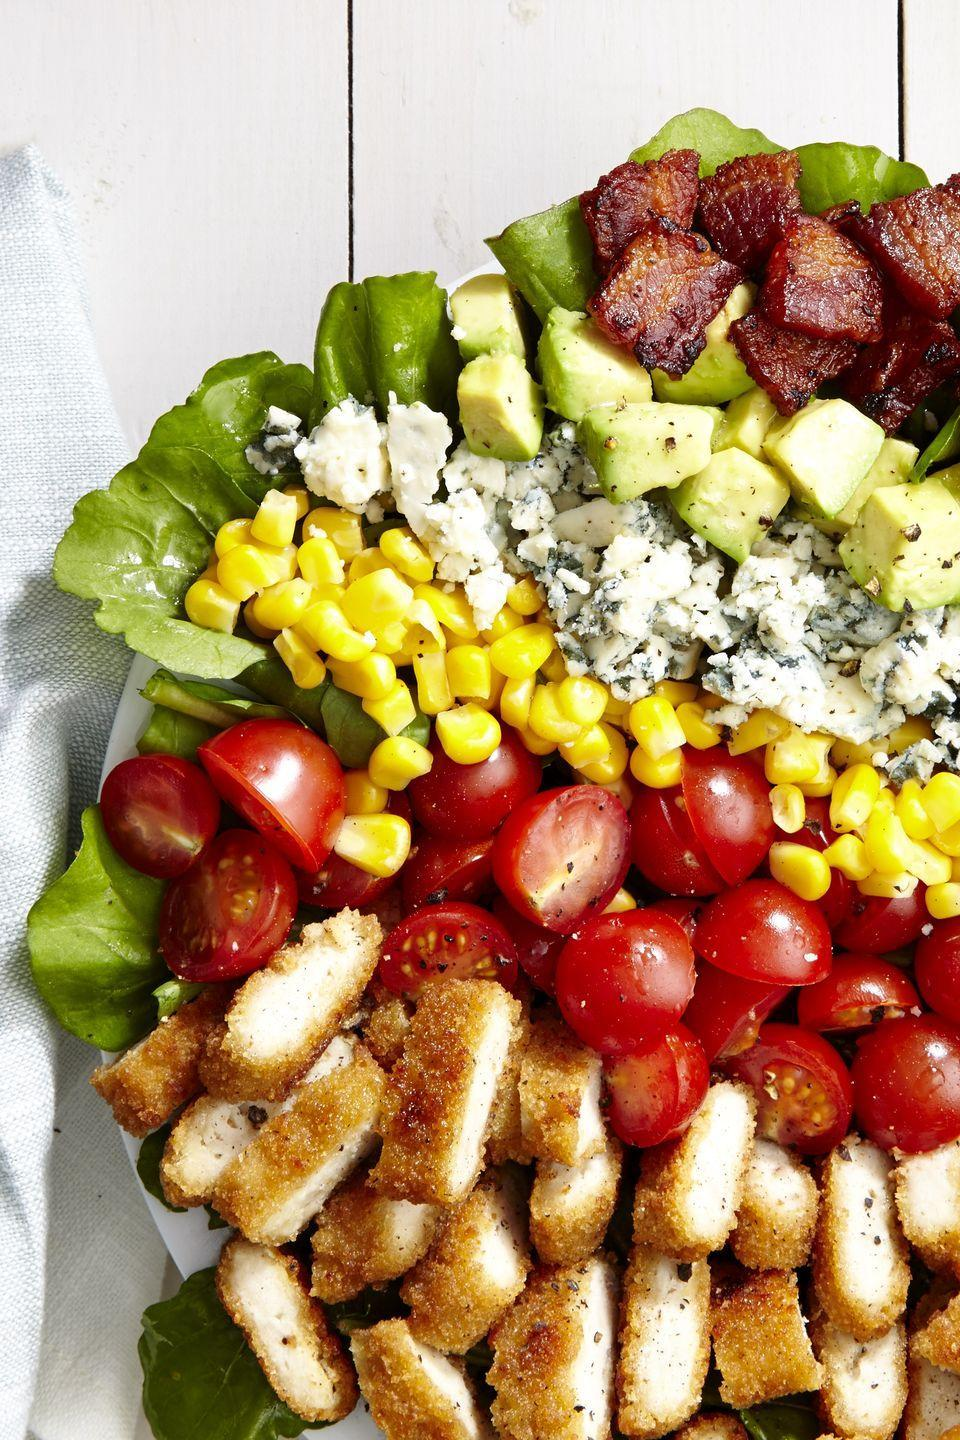 """<p>Up your salad game with this classic Cobb.</p><p>Get the recipe from <a href=""""https://www.delish.com/cooking/recipe-ideas/recipes/a46115/breaded-chicken-cobb-salad-recipe/"""" rel=""""nofollow noopener"""" target=""""_blank"""" data-ylk=""""slk:Delish"""" class=""""link rapid-noclick-resp"""">Delish</a>.</p>"""